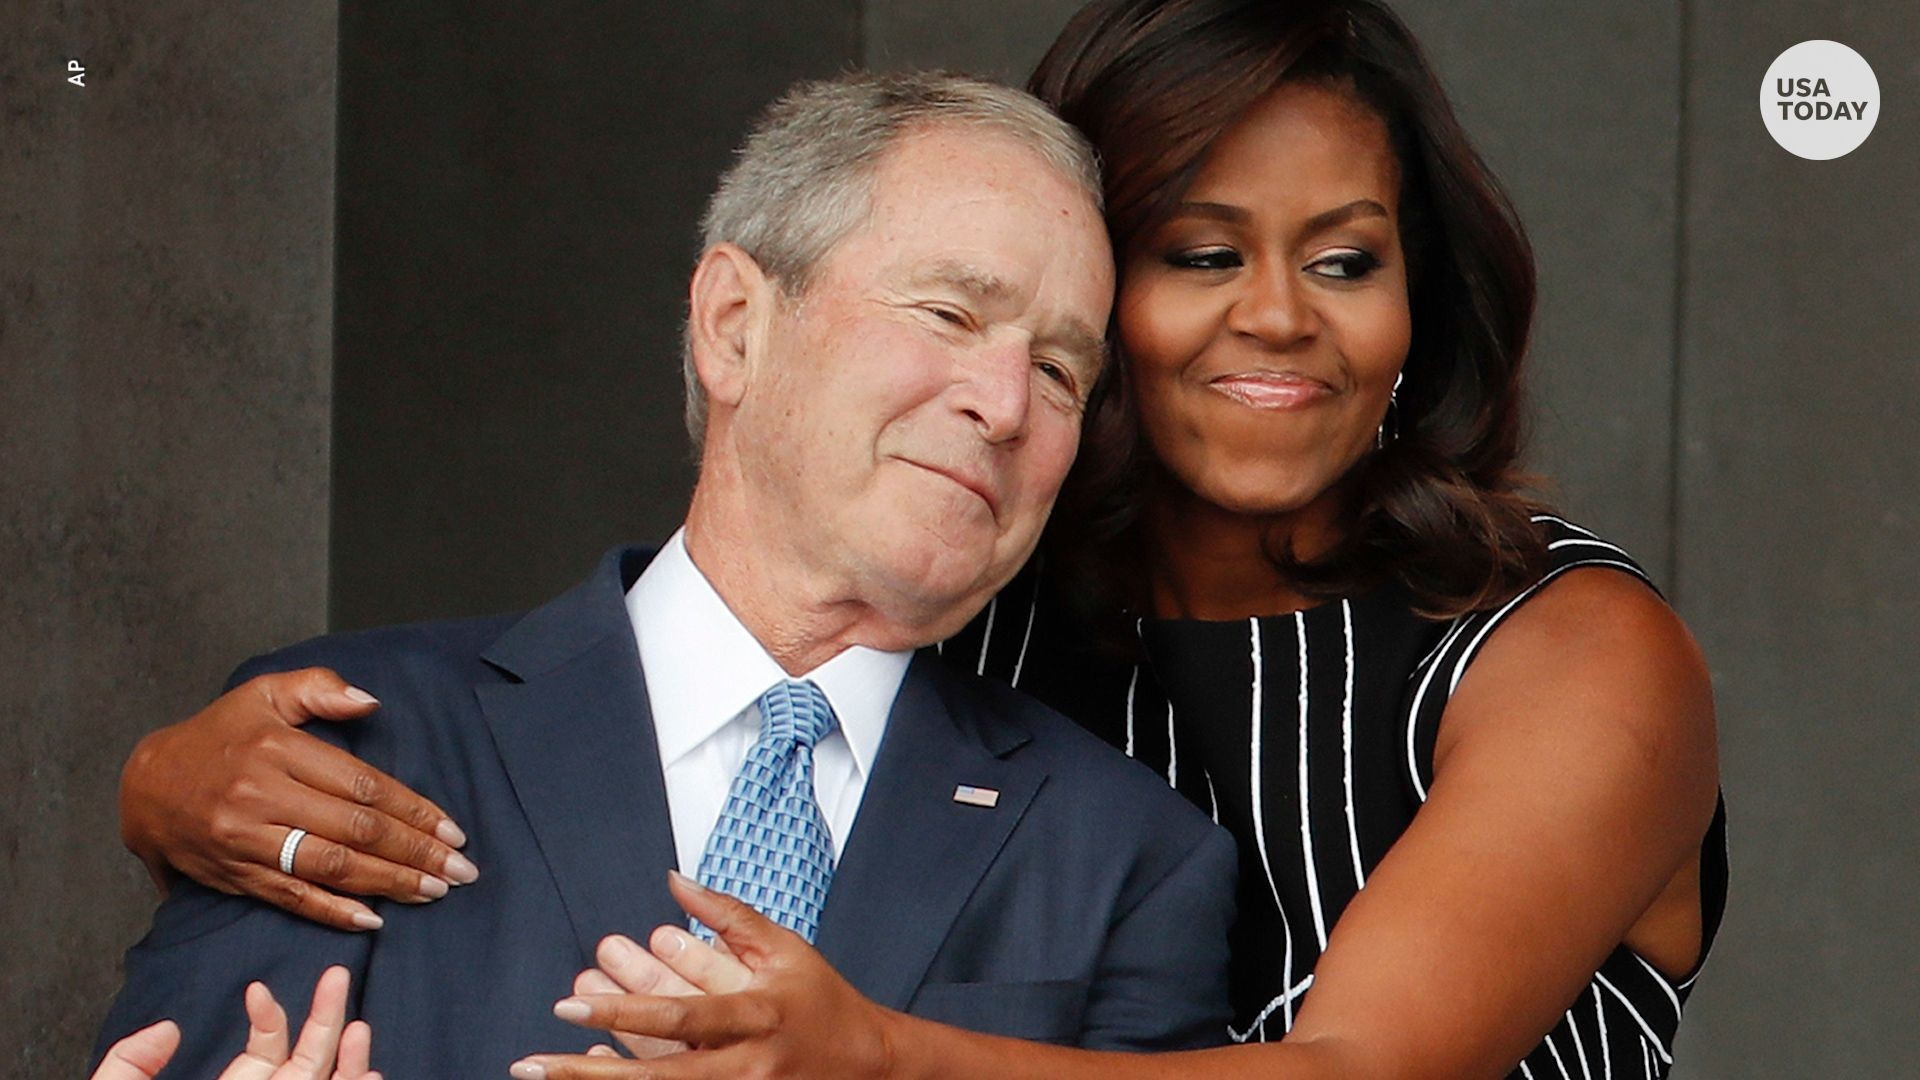 1920x1080 Michelle Obama and George W. Bush's friendship through the years